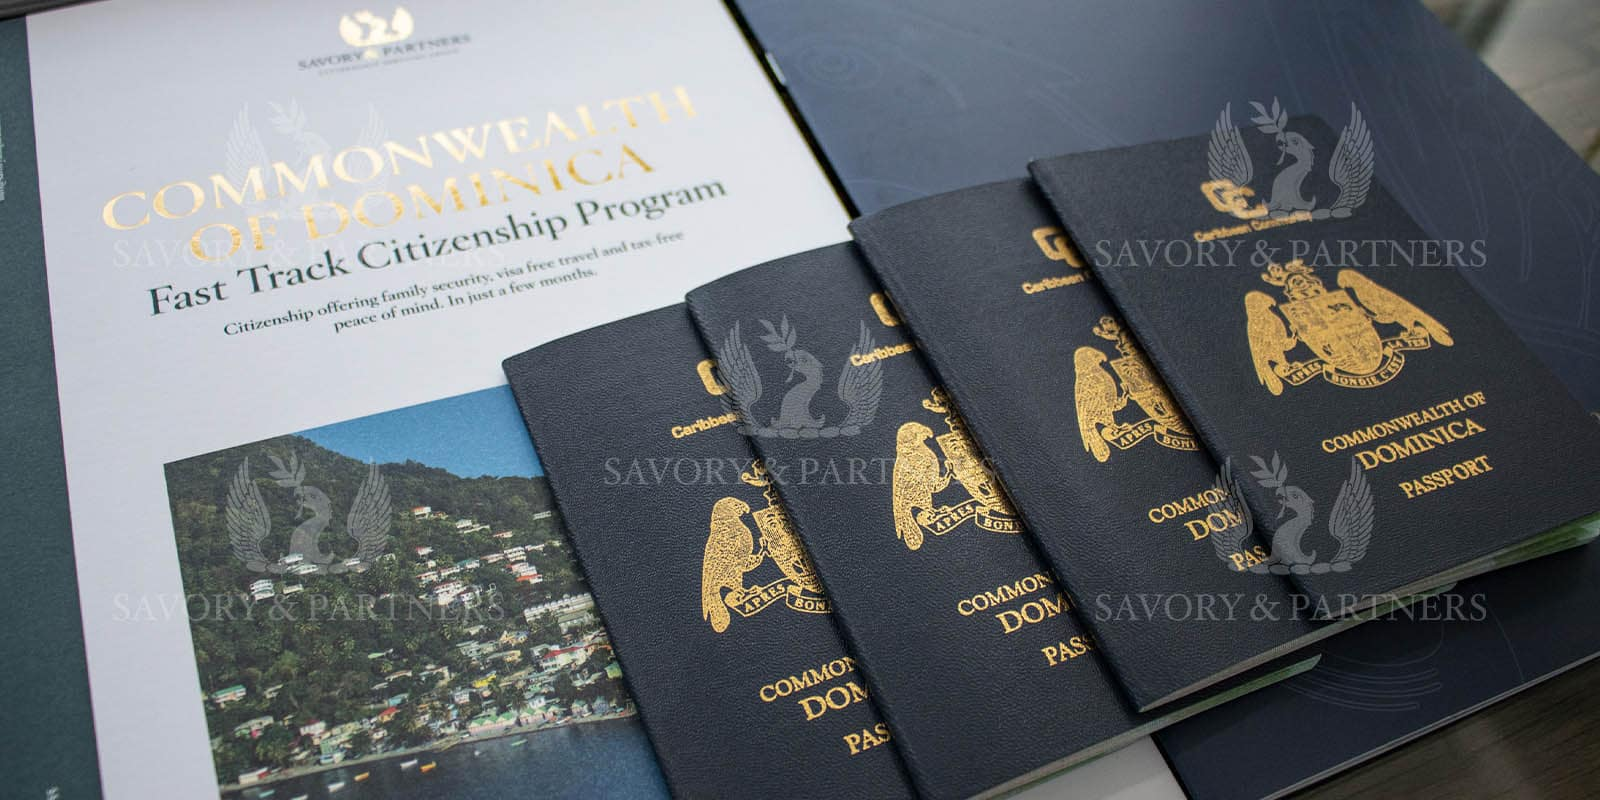 Commonwealth of Dominica announces the launch of its new biometric passport